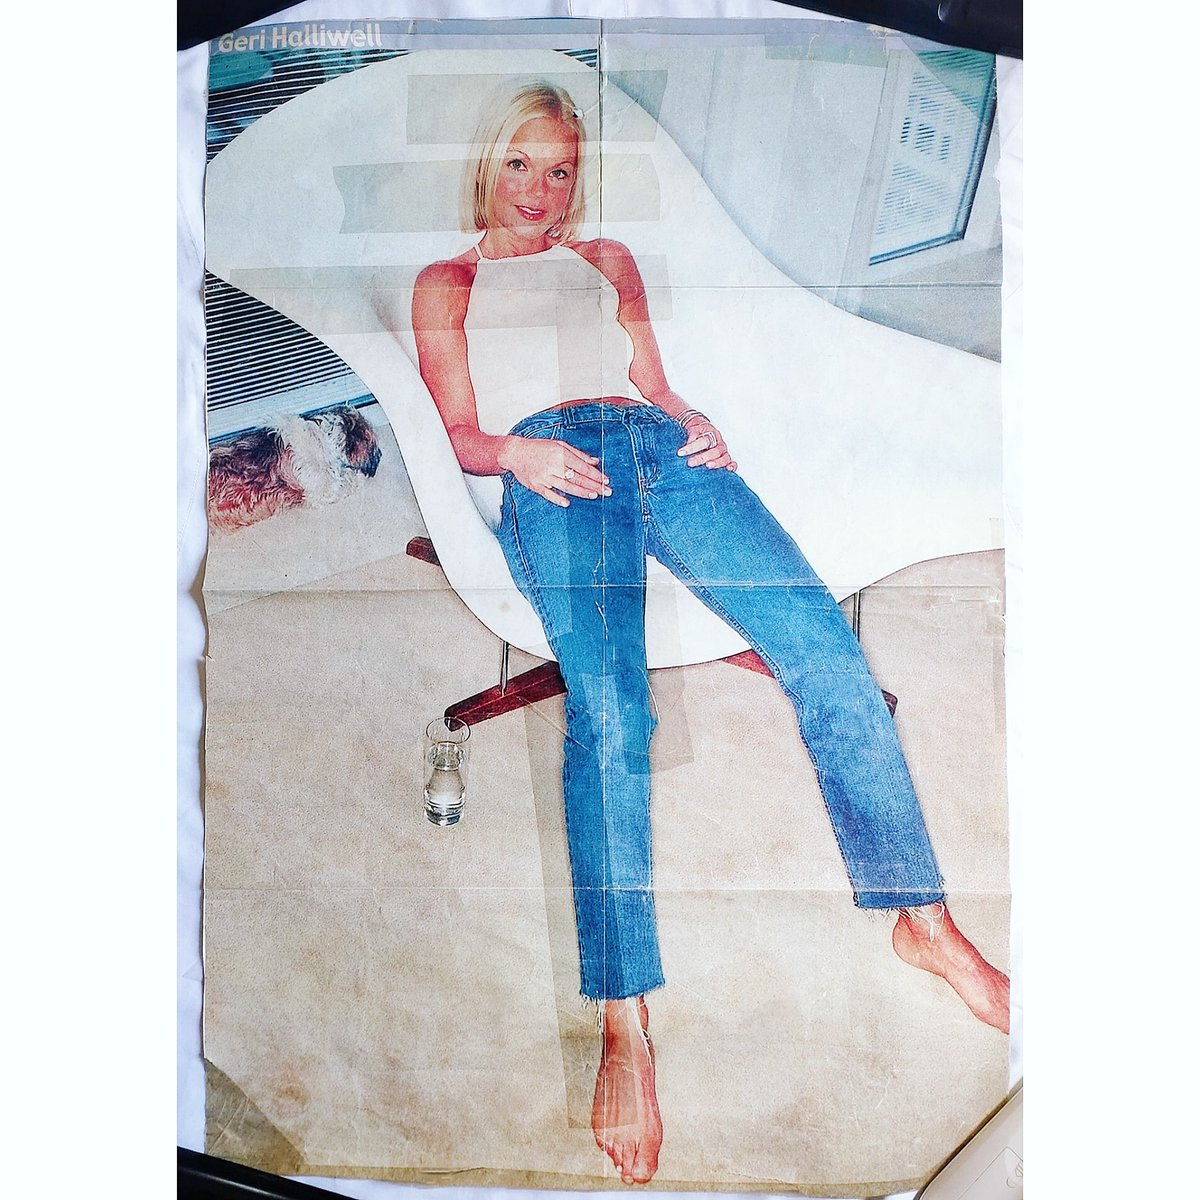 This @GeriHalliwell 72cmx50cm original POSTER from 2001 was one of the first magazine that I actually bought in News Stand back in the day that's why the condition it's not the best because I genuinely masking tape it to the wall in my bedroom in the early 2000's.😂 #spicegirls https://t.co/nTsBqrJ89g